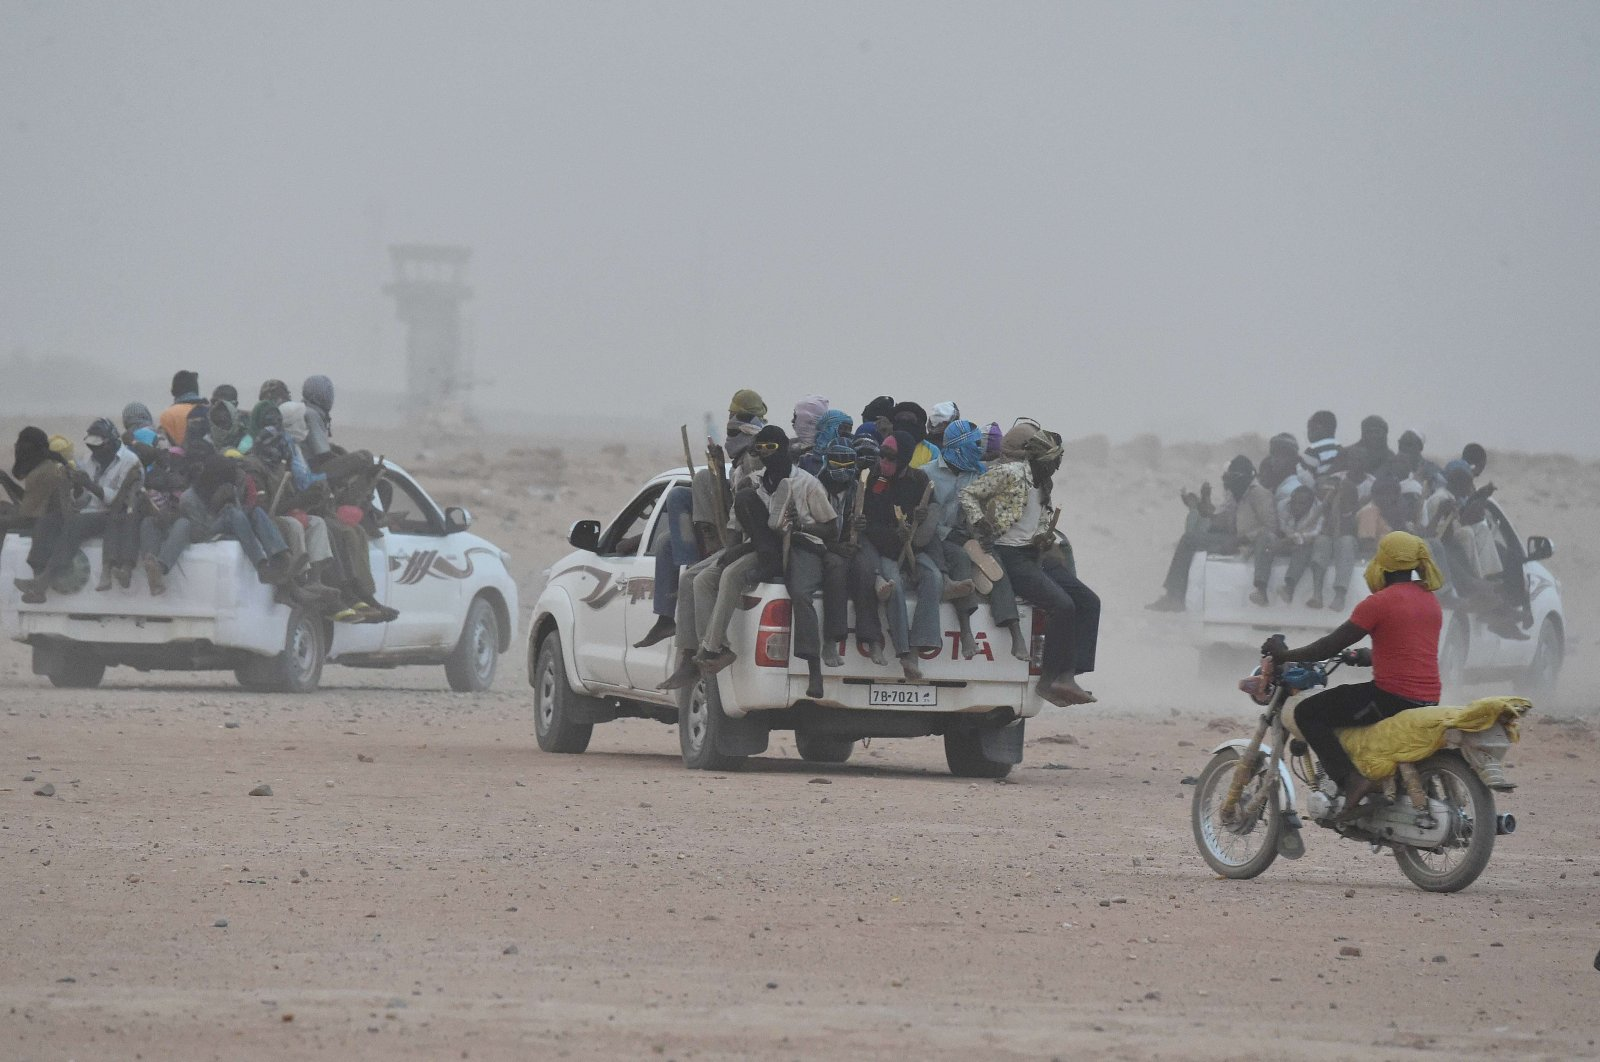 Pick-up vehicles carrying migrants hoping to reach Europe leave Agadez, Niger, on June 1, 2015. (AFP Photo)